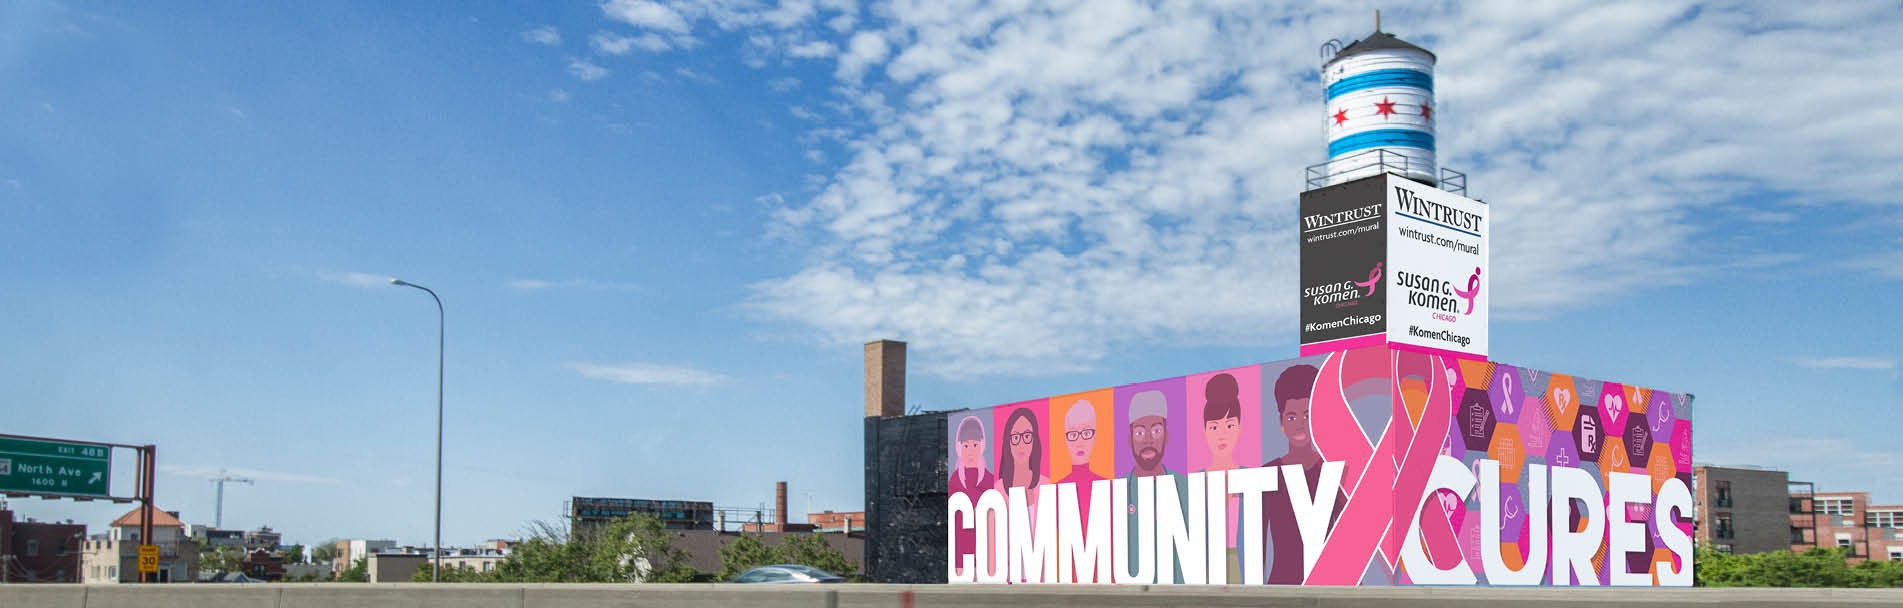 The Mural Building: Susan G. Komen Chicago